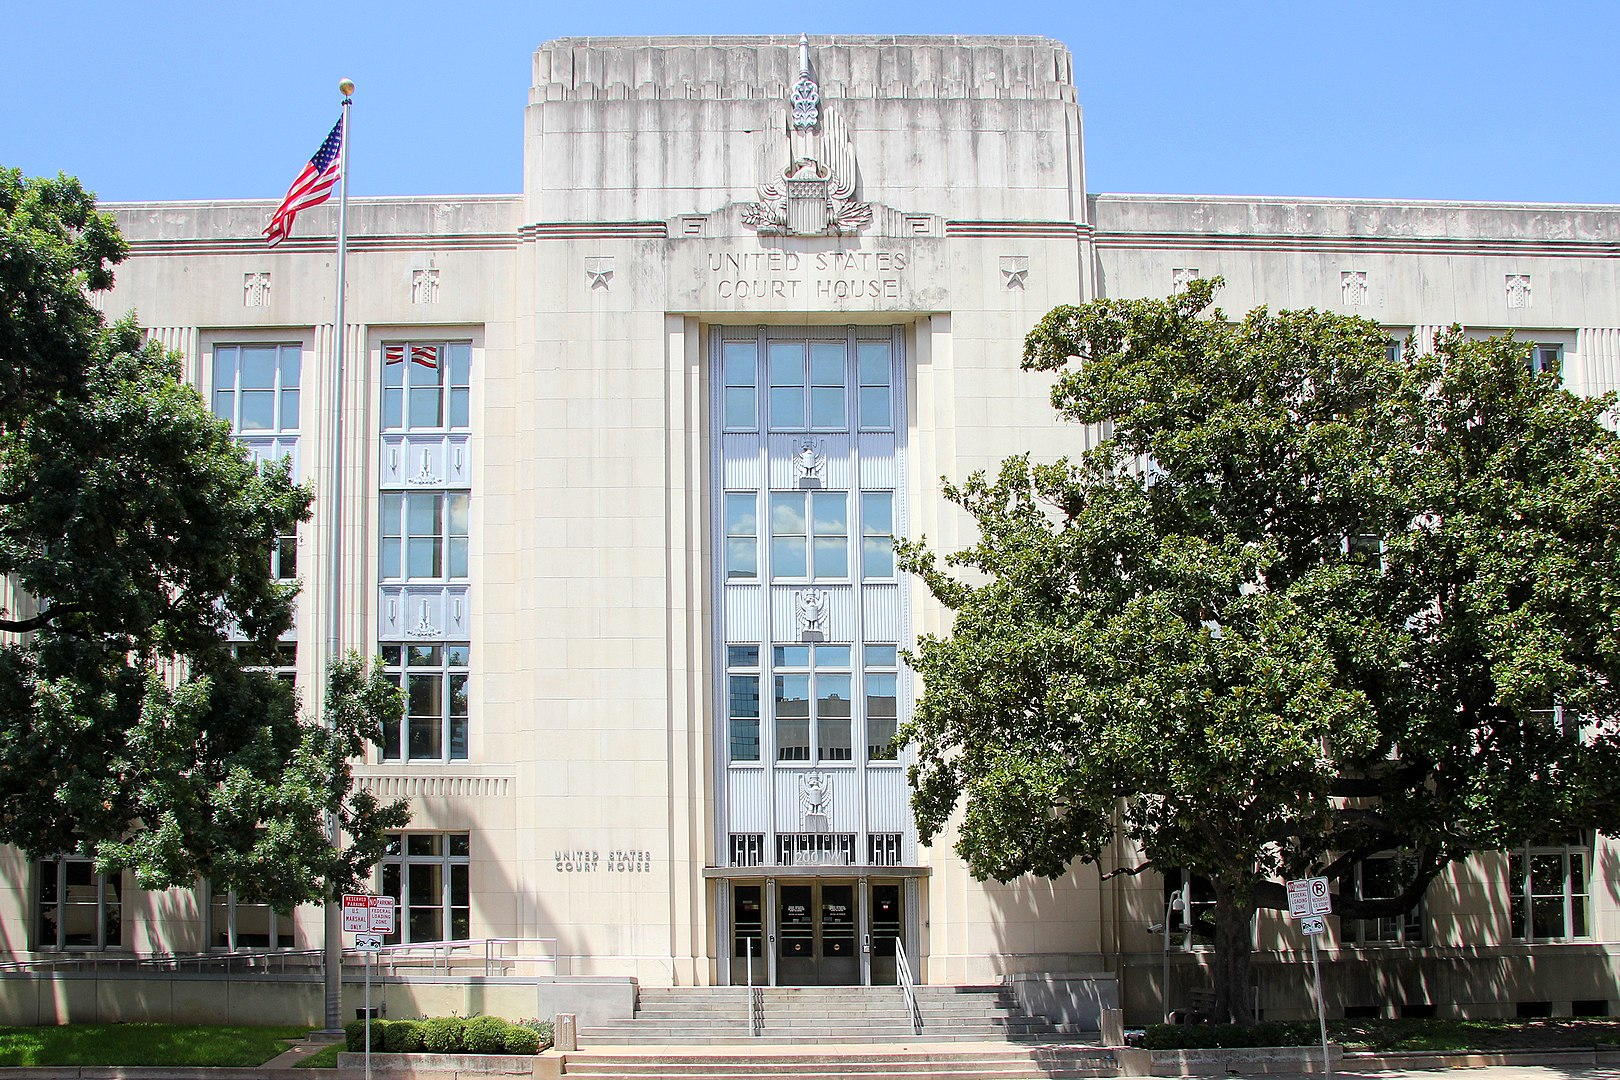 The historic United States Courthouse in Austin, Texas (1936)